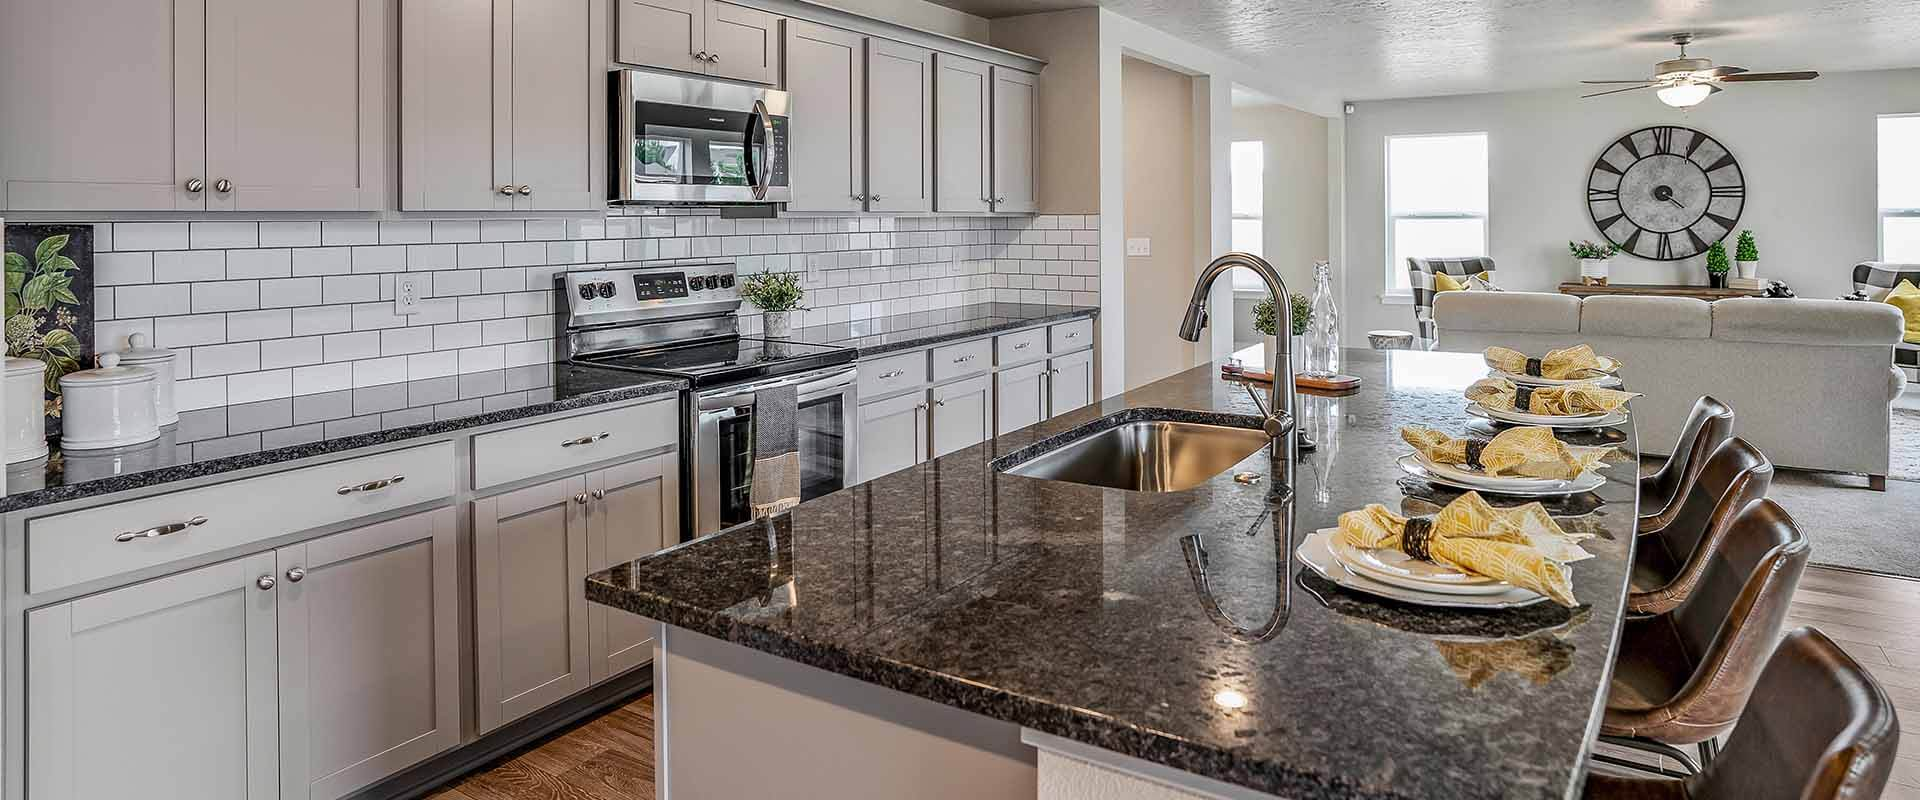 Hubble Homes Yosemite Model Kitchen 1920x800.jpg